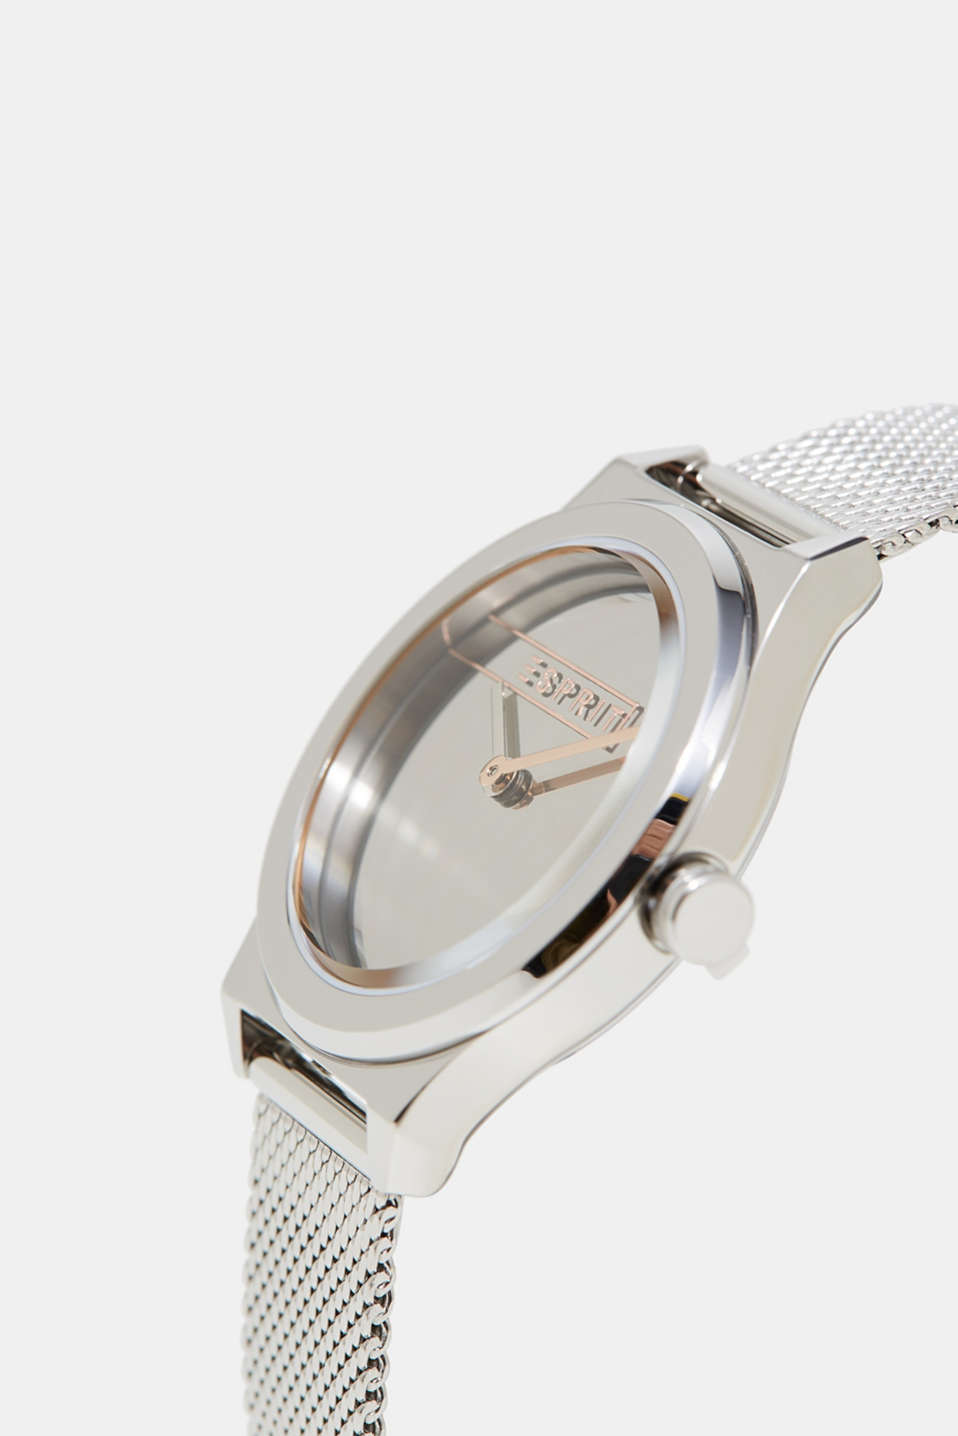 Stainless steel watch with a mirrored dial